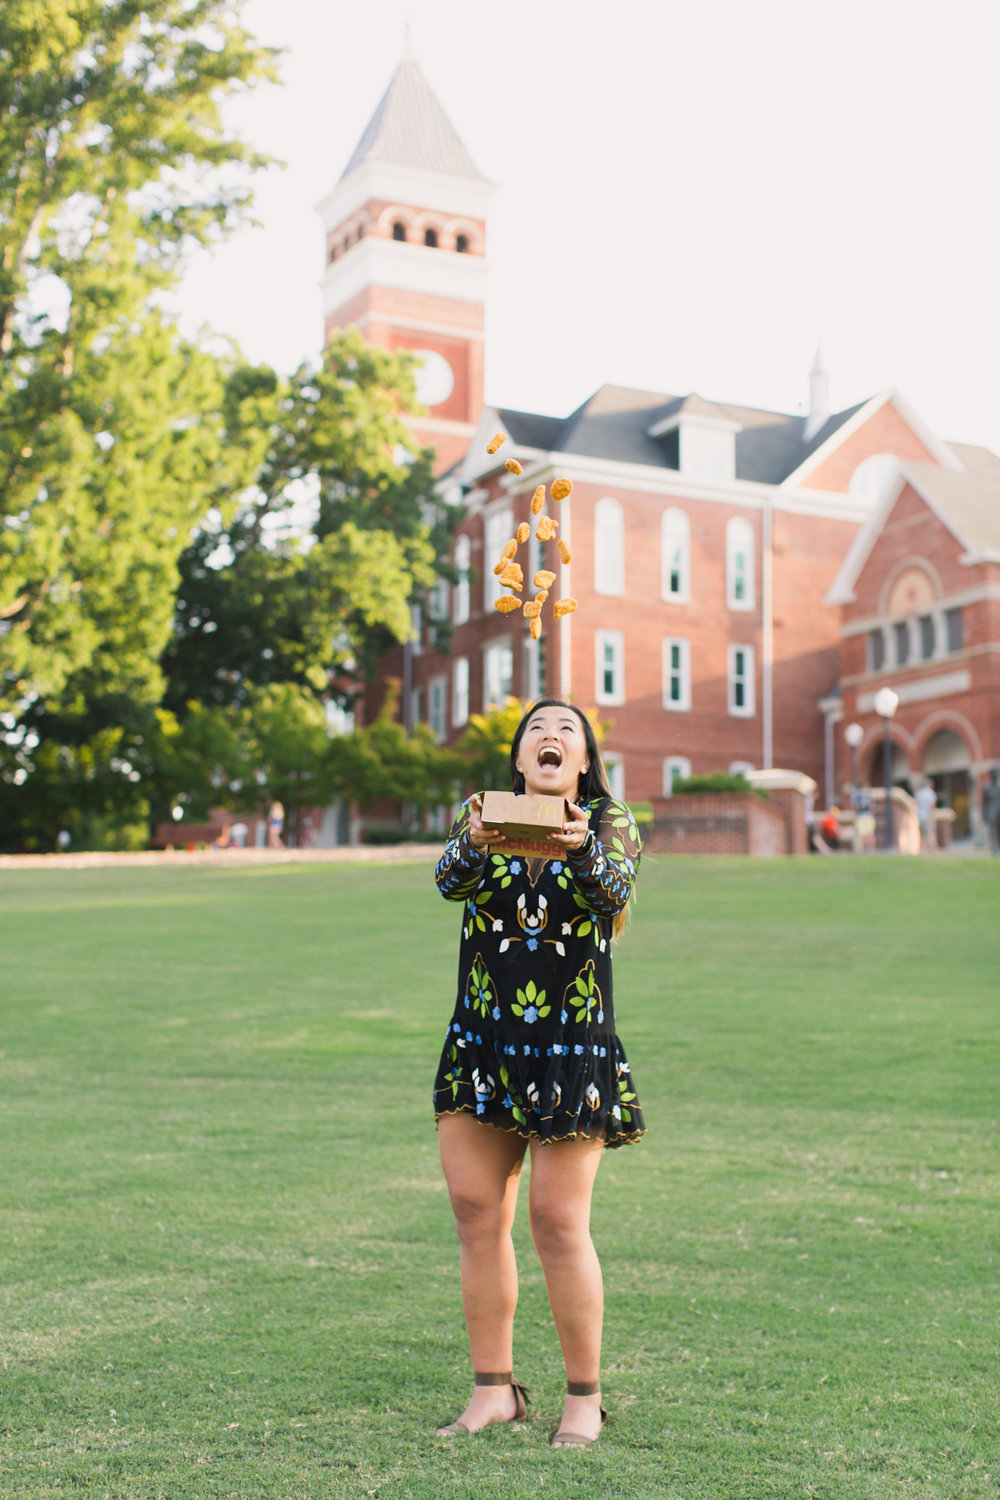 Taryn_Carroll-Clemson-University Senior Photo-0800.jpg